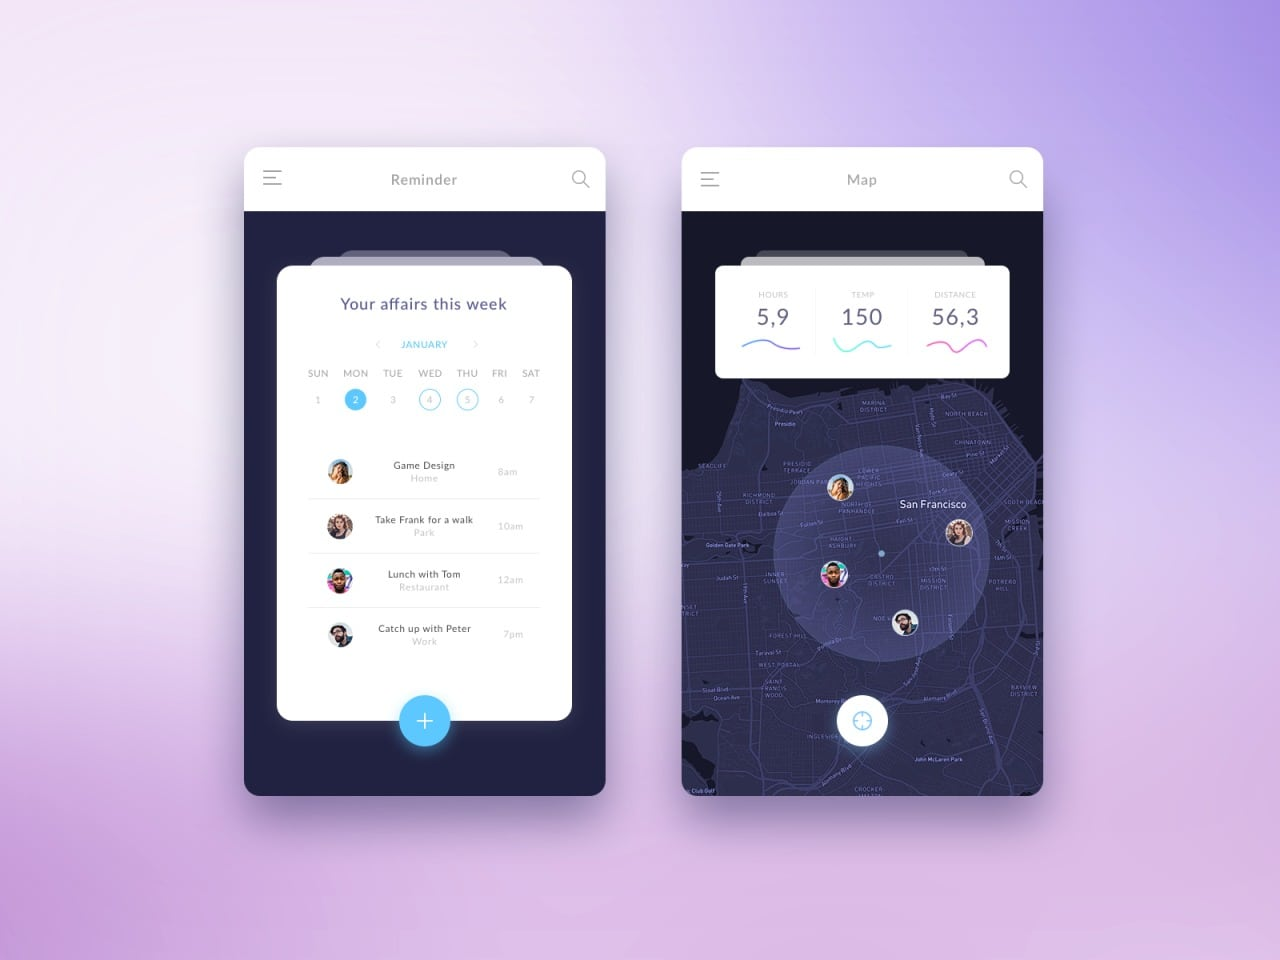 Map inspiration by @Mihalcov #ui #inspiration #interface #ios #design #iphone